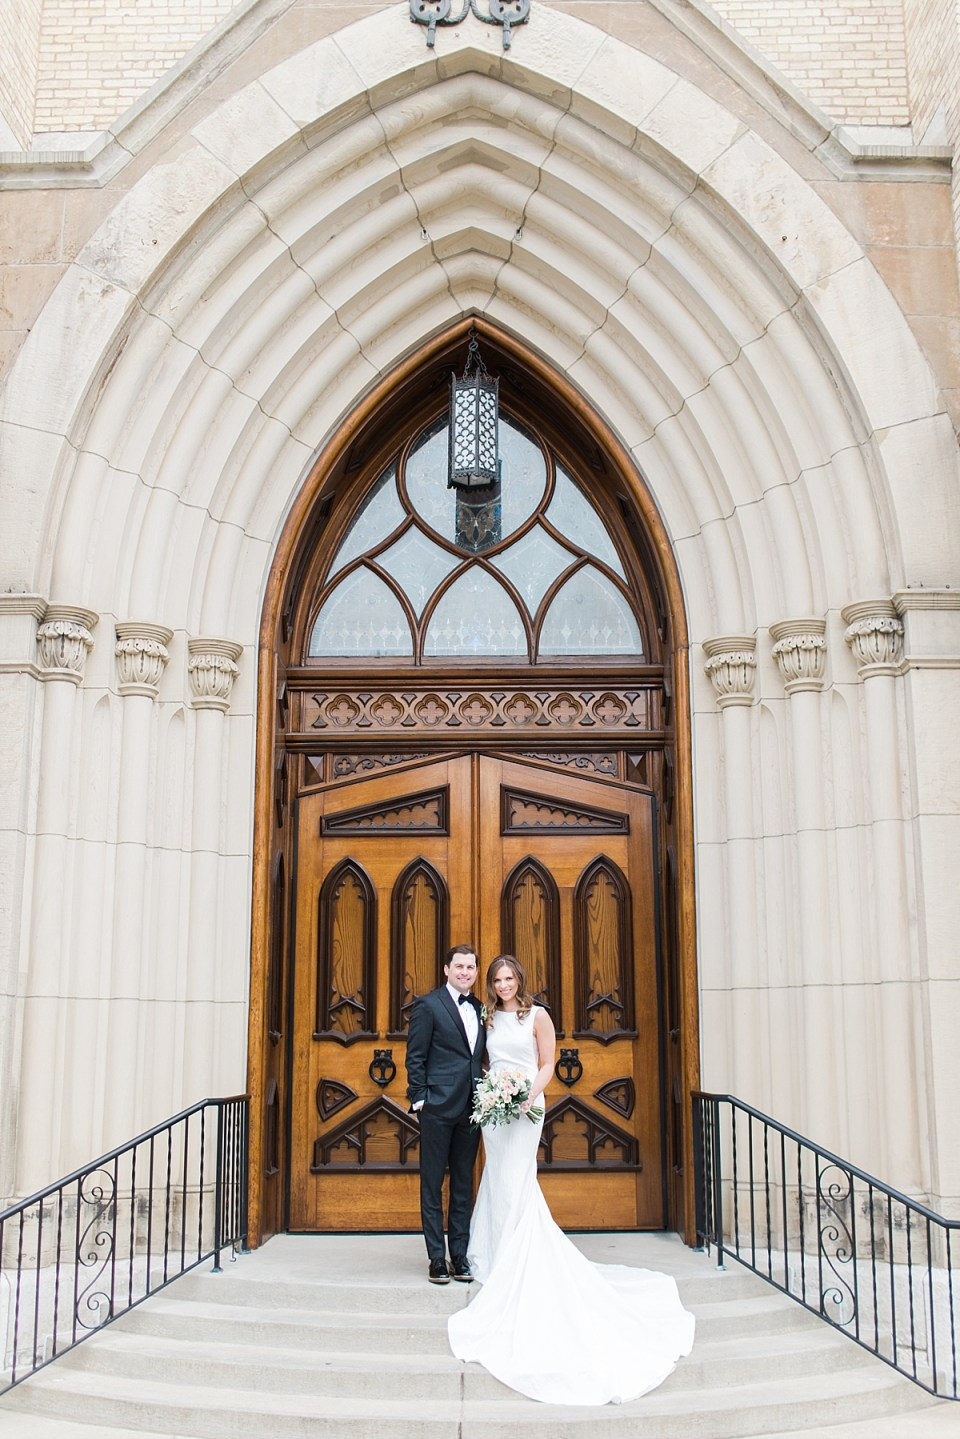 Arielle Peters Photography | Bride and groom outside cathedral doors on wedding day at the Basilica of the Sacred Heart in Notre Dame, Indiana.